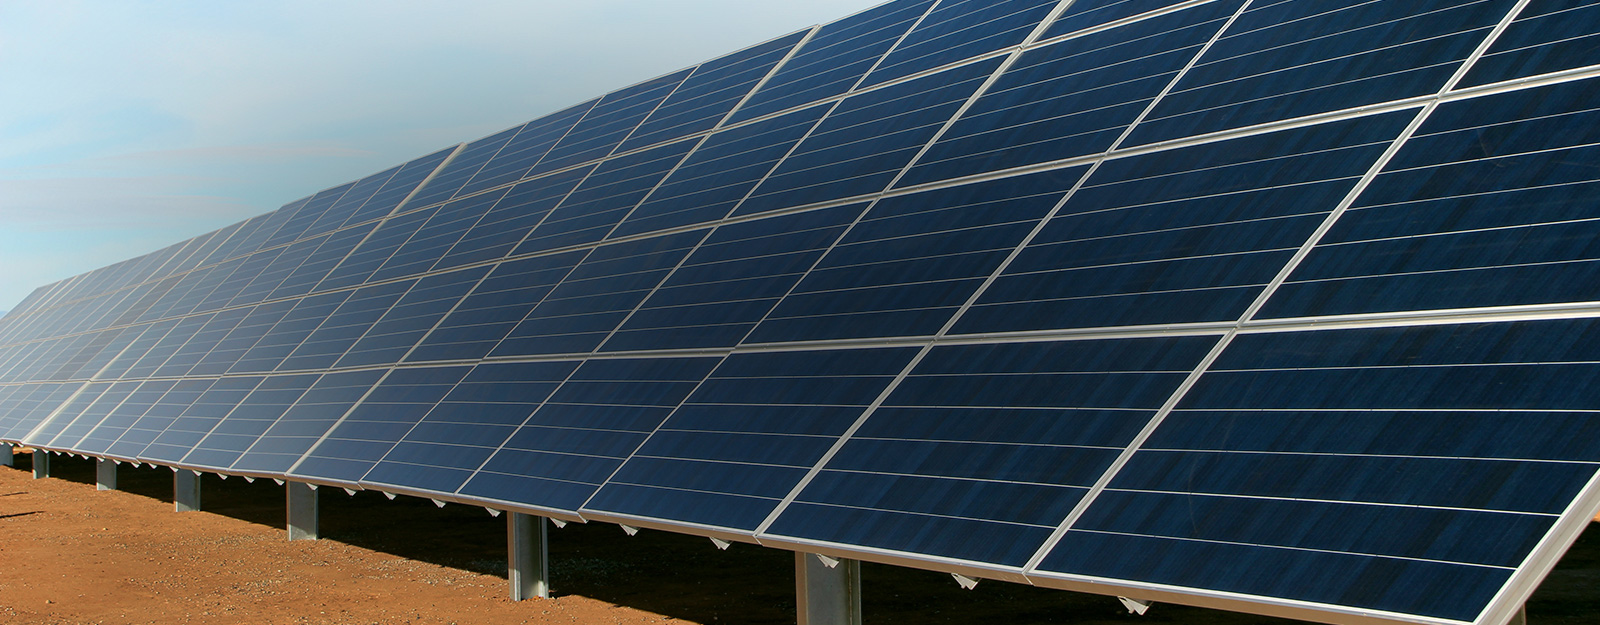 How Australia Post Have Become Leaders in Commercial Solar Power